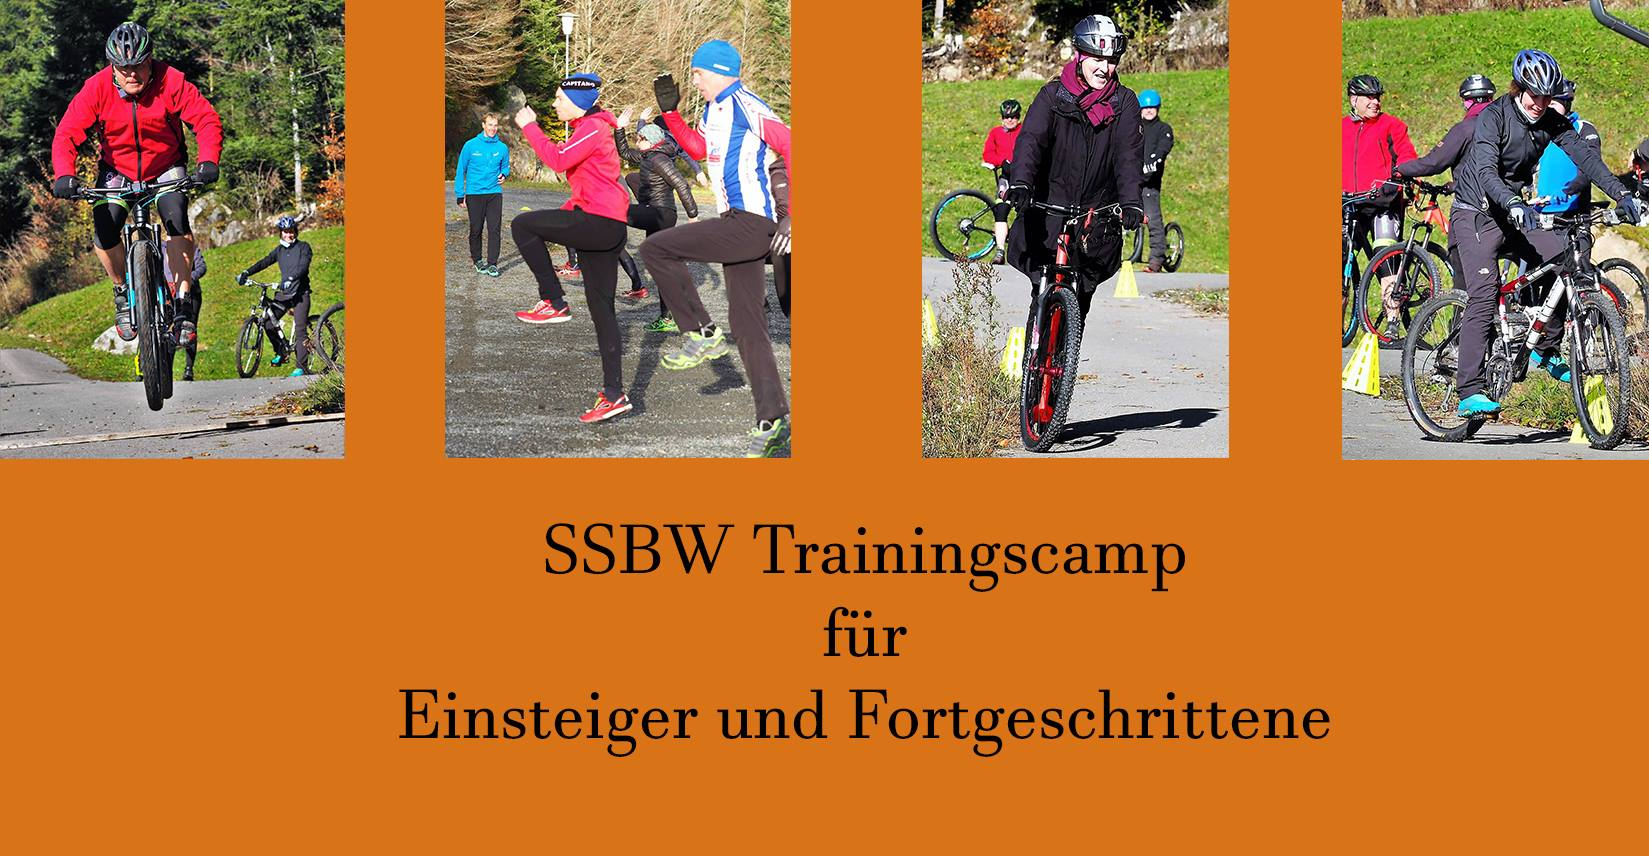 SSBW_Trainingscamp_10-2018_Alex_-1.jpg